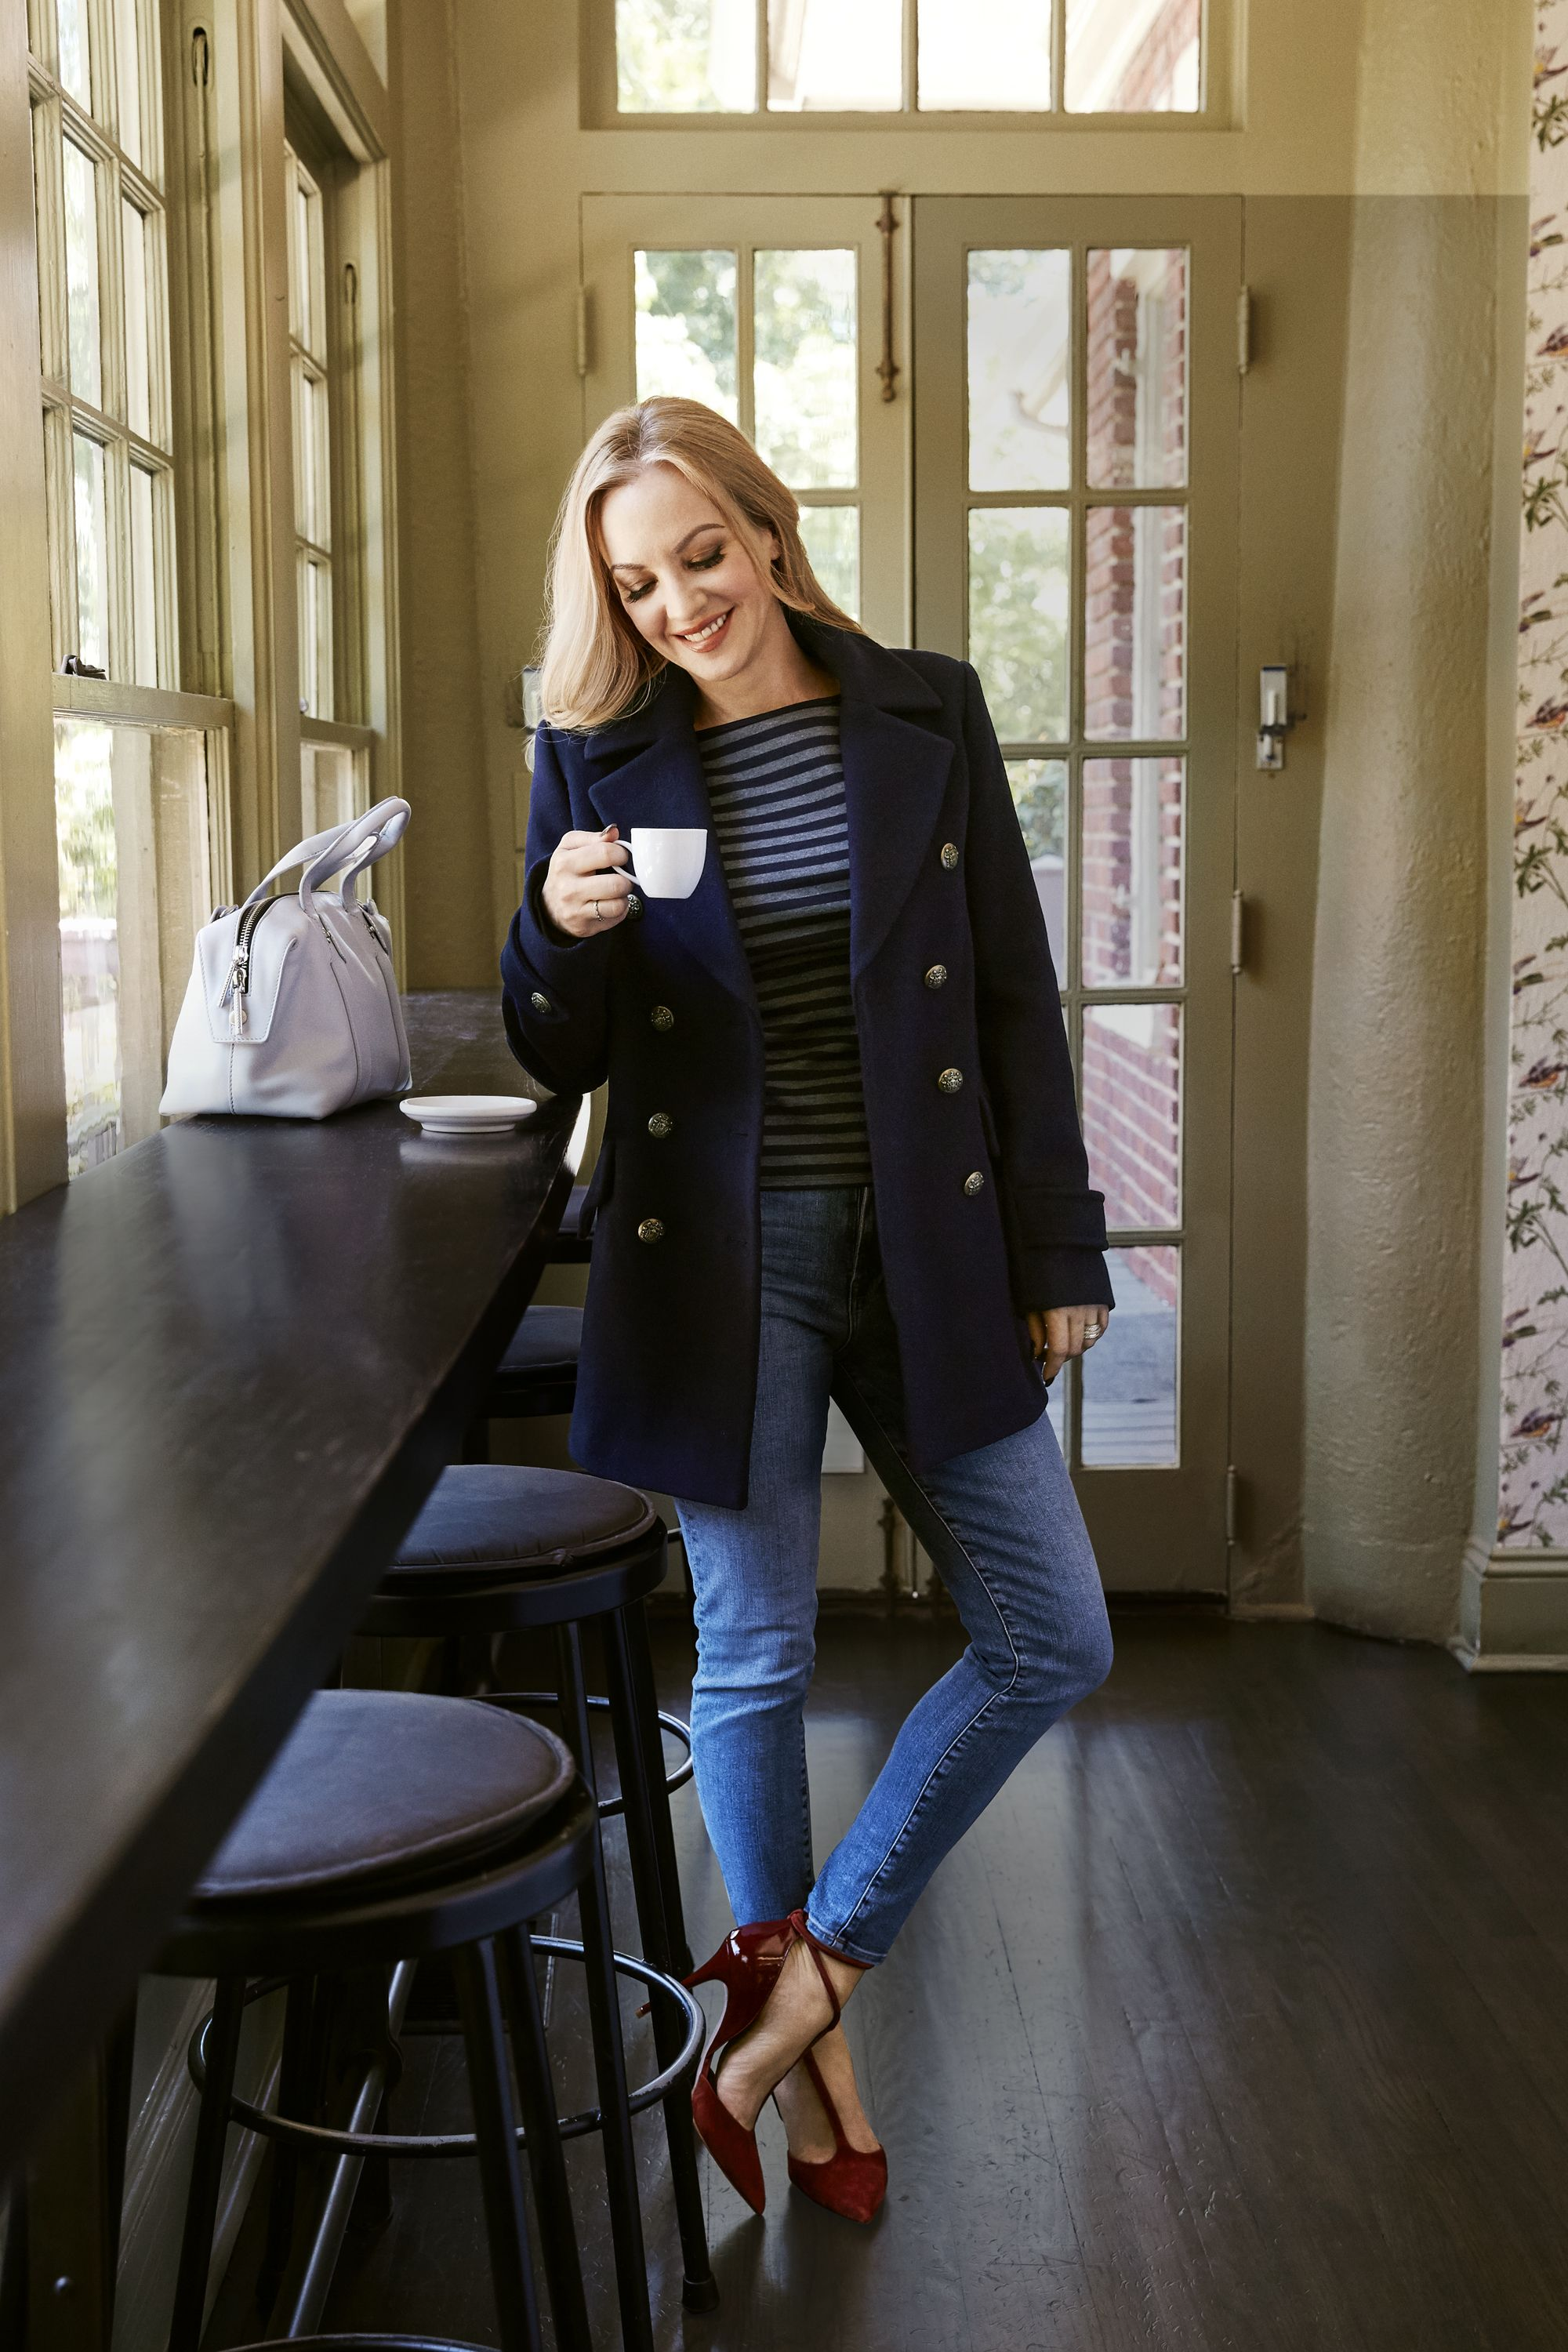 "<p>This nautical number never goes out of style. Stick to classic detailing, like brass buttons, and a shade of navy, black or gray to ensure that yours remains timeless. </p><p><em><strong>Coat</strong>, French Connection, $198, <a href=""http://nordstrom.com"" target=""_blank"">nordstrom.com</a>. <strong>Shirt</strong>, $60, <a href=""http://thelimited.com"" target=""_blank"">thelimited.com</a>. <strong>Jeans</strong>, $35, <a href=""http://oldnavy.com"" target=""_blank"">oldnavy.com</a>. <strong>Ring</strong>, $65, <a href=""http://pandora.net"" target=""_blank"">pandora.net</a>. <strong>Ring</strong> (left hand throughout), Wendi's own. <strong>Heels</strong>, $295, <a href=""http://reiss.com"" target=""_blank"">reiss.com</a>. <strong>Bag</strong>, Flynn, $450, <a href=""http://urbanoutfitters.com"" target=""_blank"">urbanoutfitters.com</a>.</em> </p><p><em><strong>On location:</strong> <a href=""http://fiveandten.com/"" target=""_blank"">5&10</a><br></em><em>Duck into 5&10 for a cup of joe or a cocktail. Yes, the hip spot serves up both, along with eats by James Beard Award–winning chef Hugh Acheson.</em></p>"